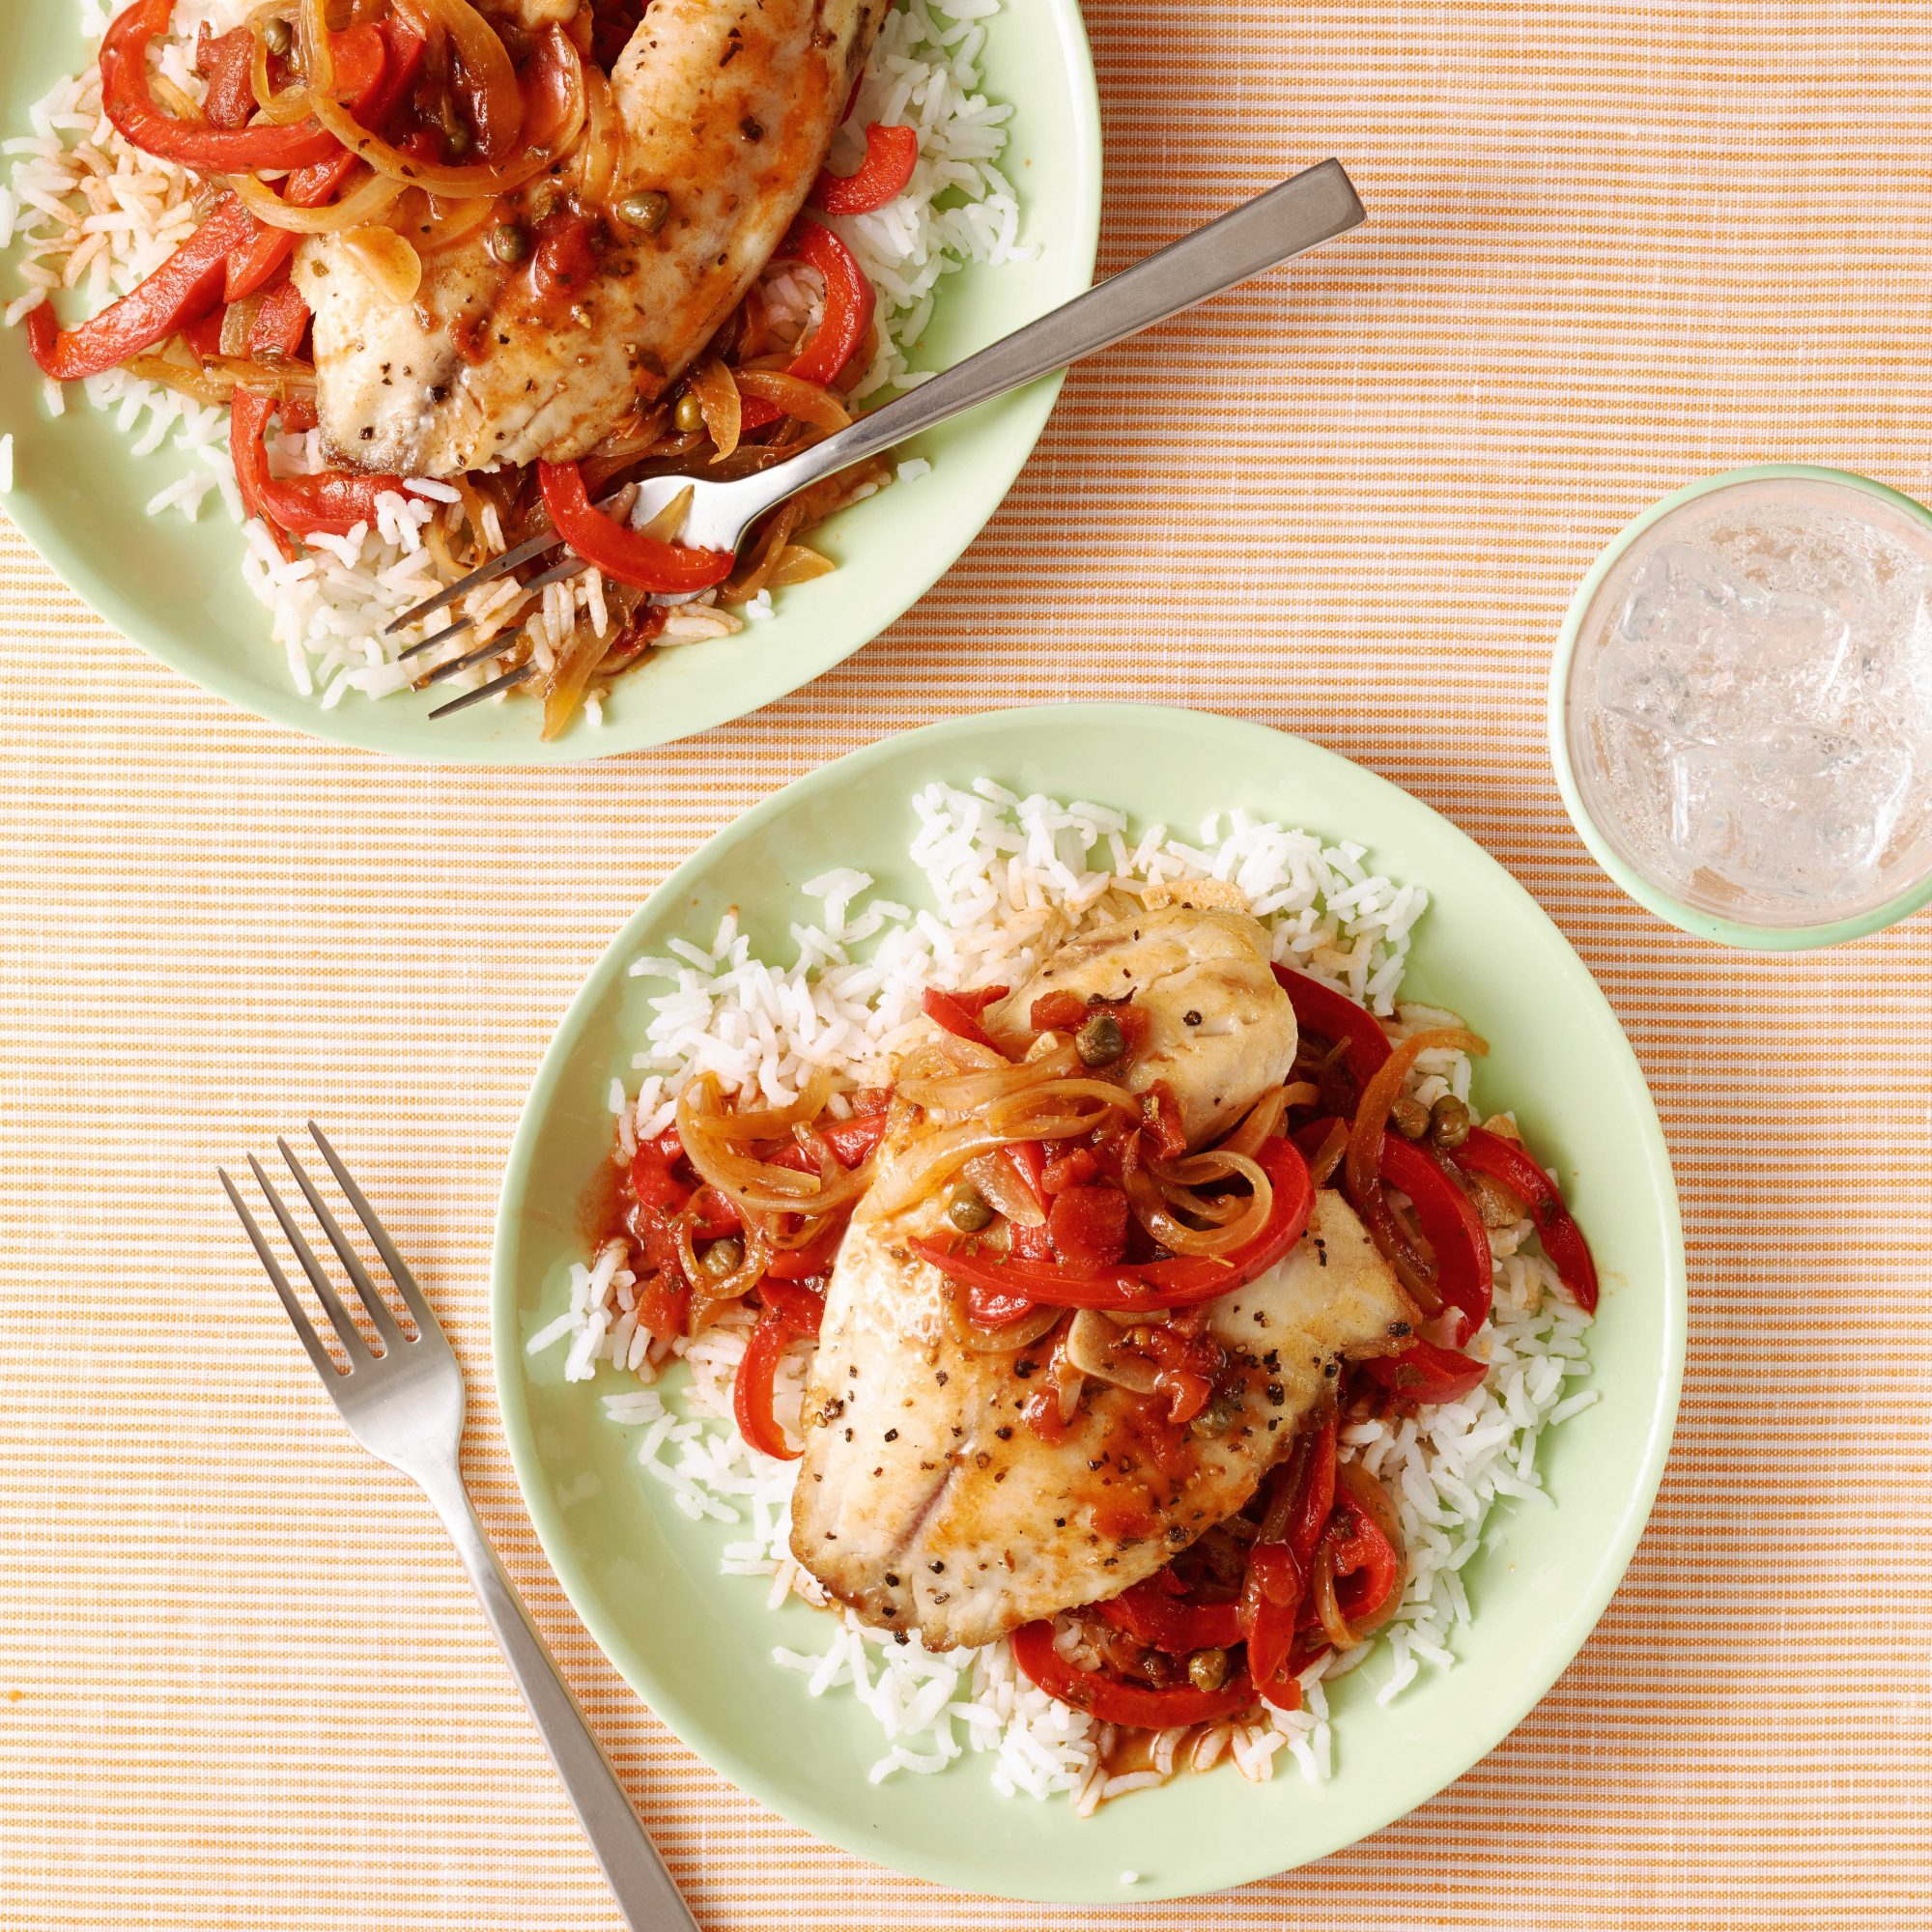 Tilapia with Spicy Red Pepper Sauce